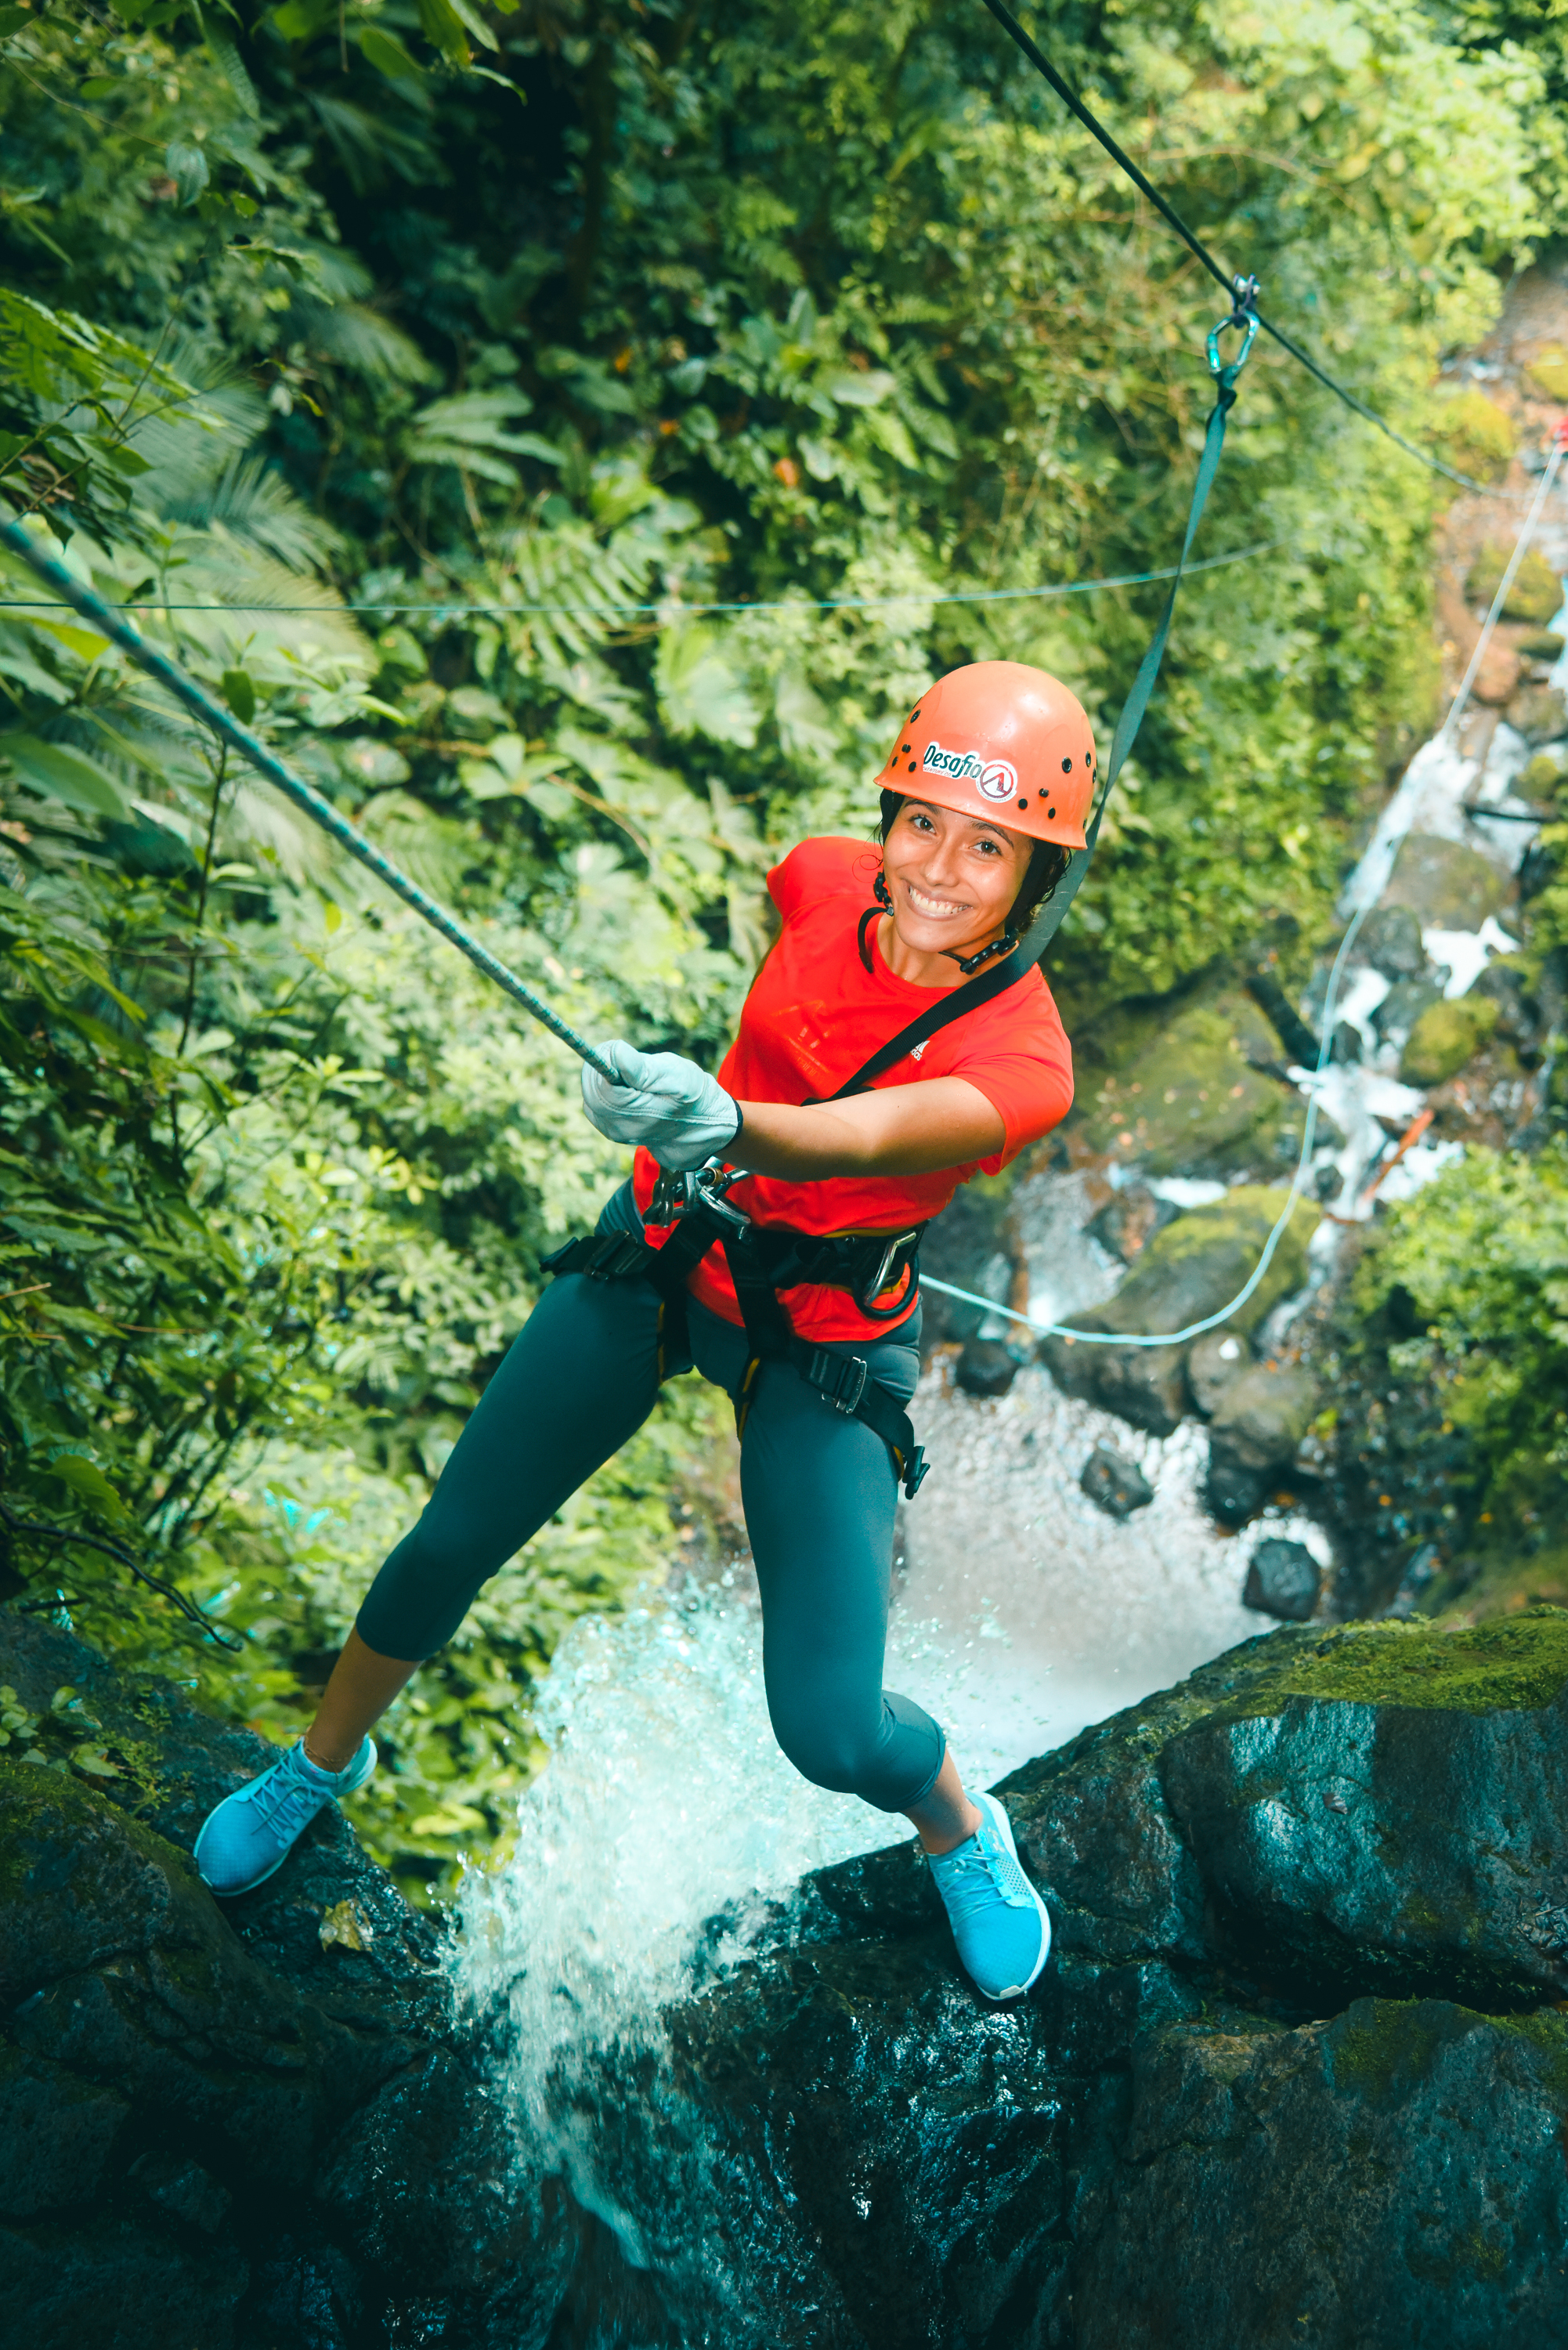 Spend the morning rappeling down pounding waterfalls that are up to 200 feet high